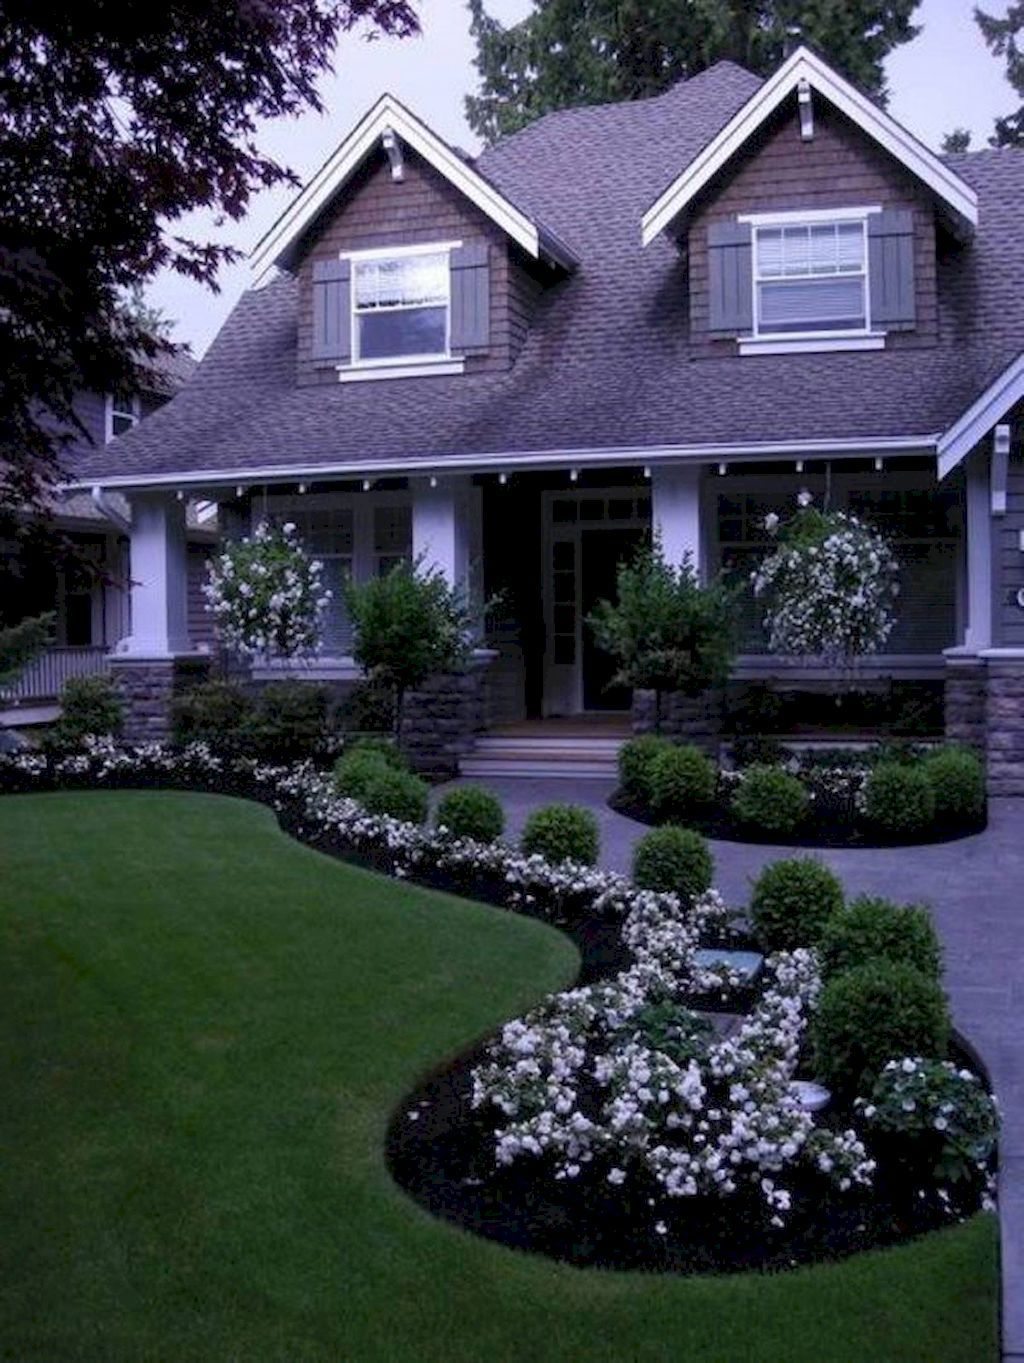 40 beautiful front yard landscaping ideas yard for House landscape plan